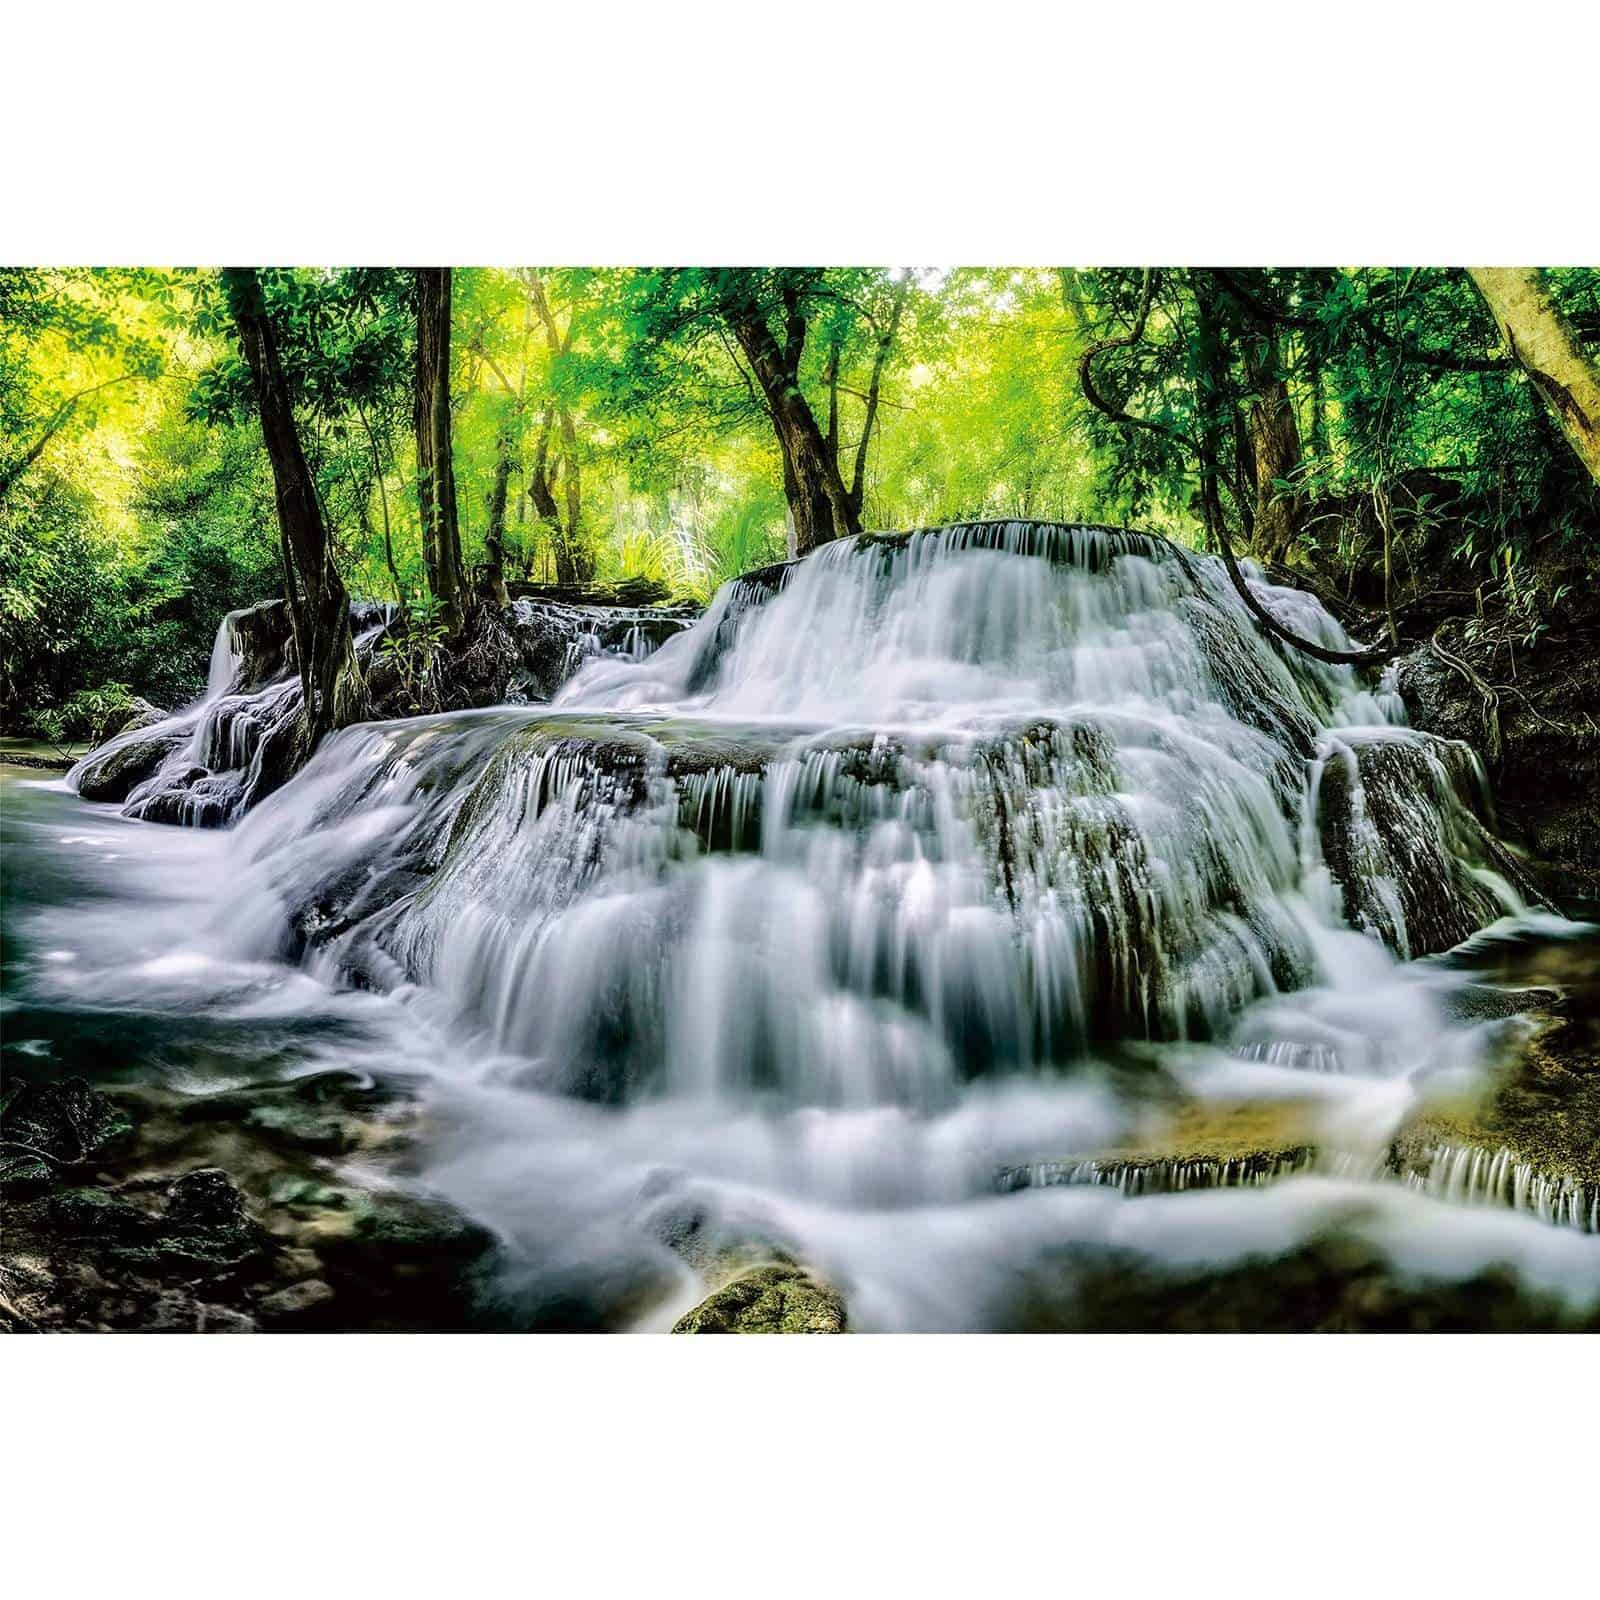 Ingooood-Jigsaw Puzzle 1000 Pieces-Sneak Peek Series-Mountain waterfall_IG-1589 Entertainment Toys for Adult Graduation or Birthday Gift Home Decor - Ingooood_US